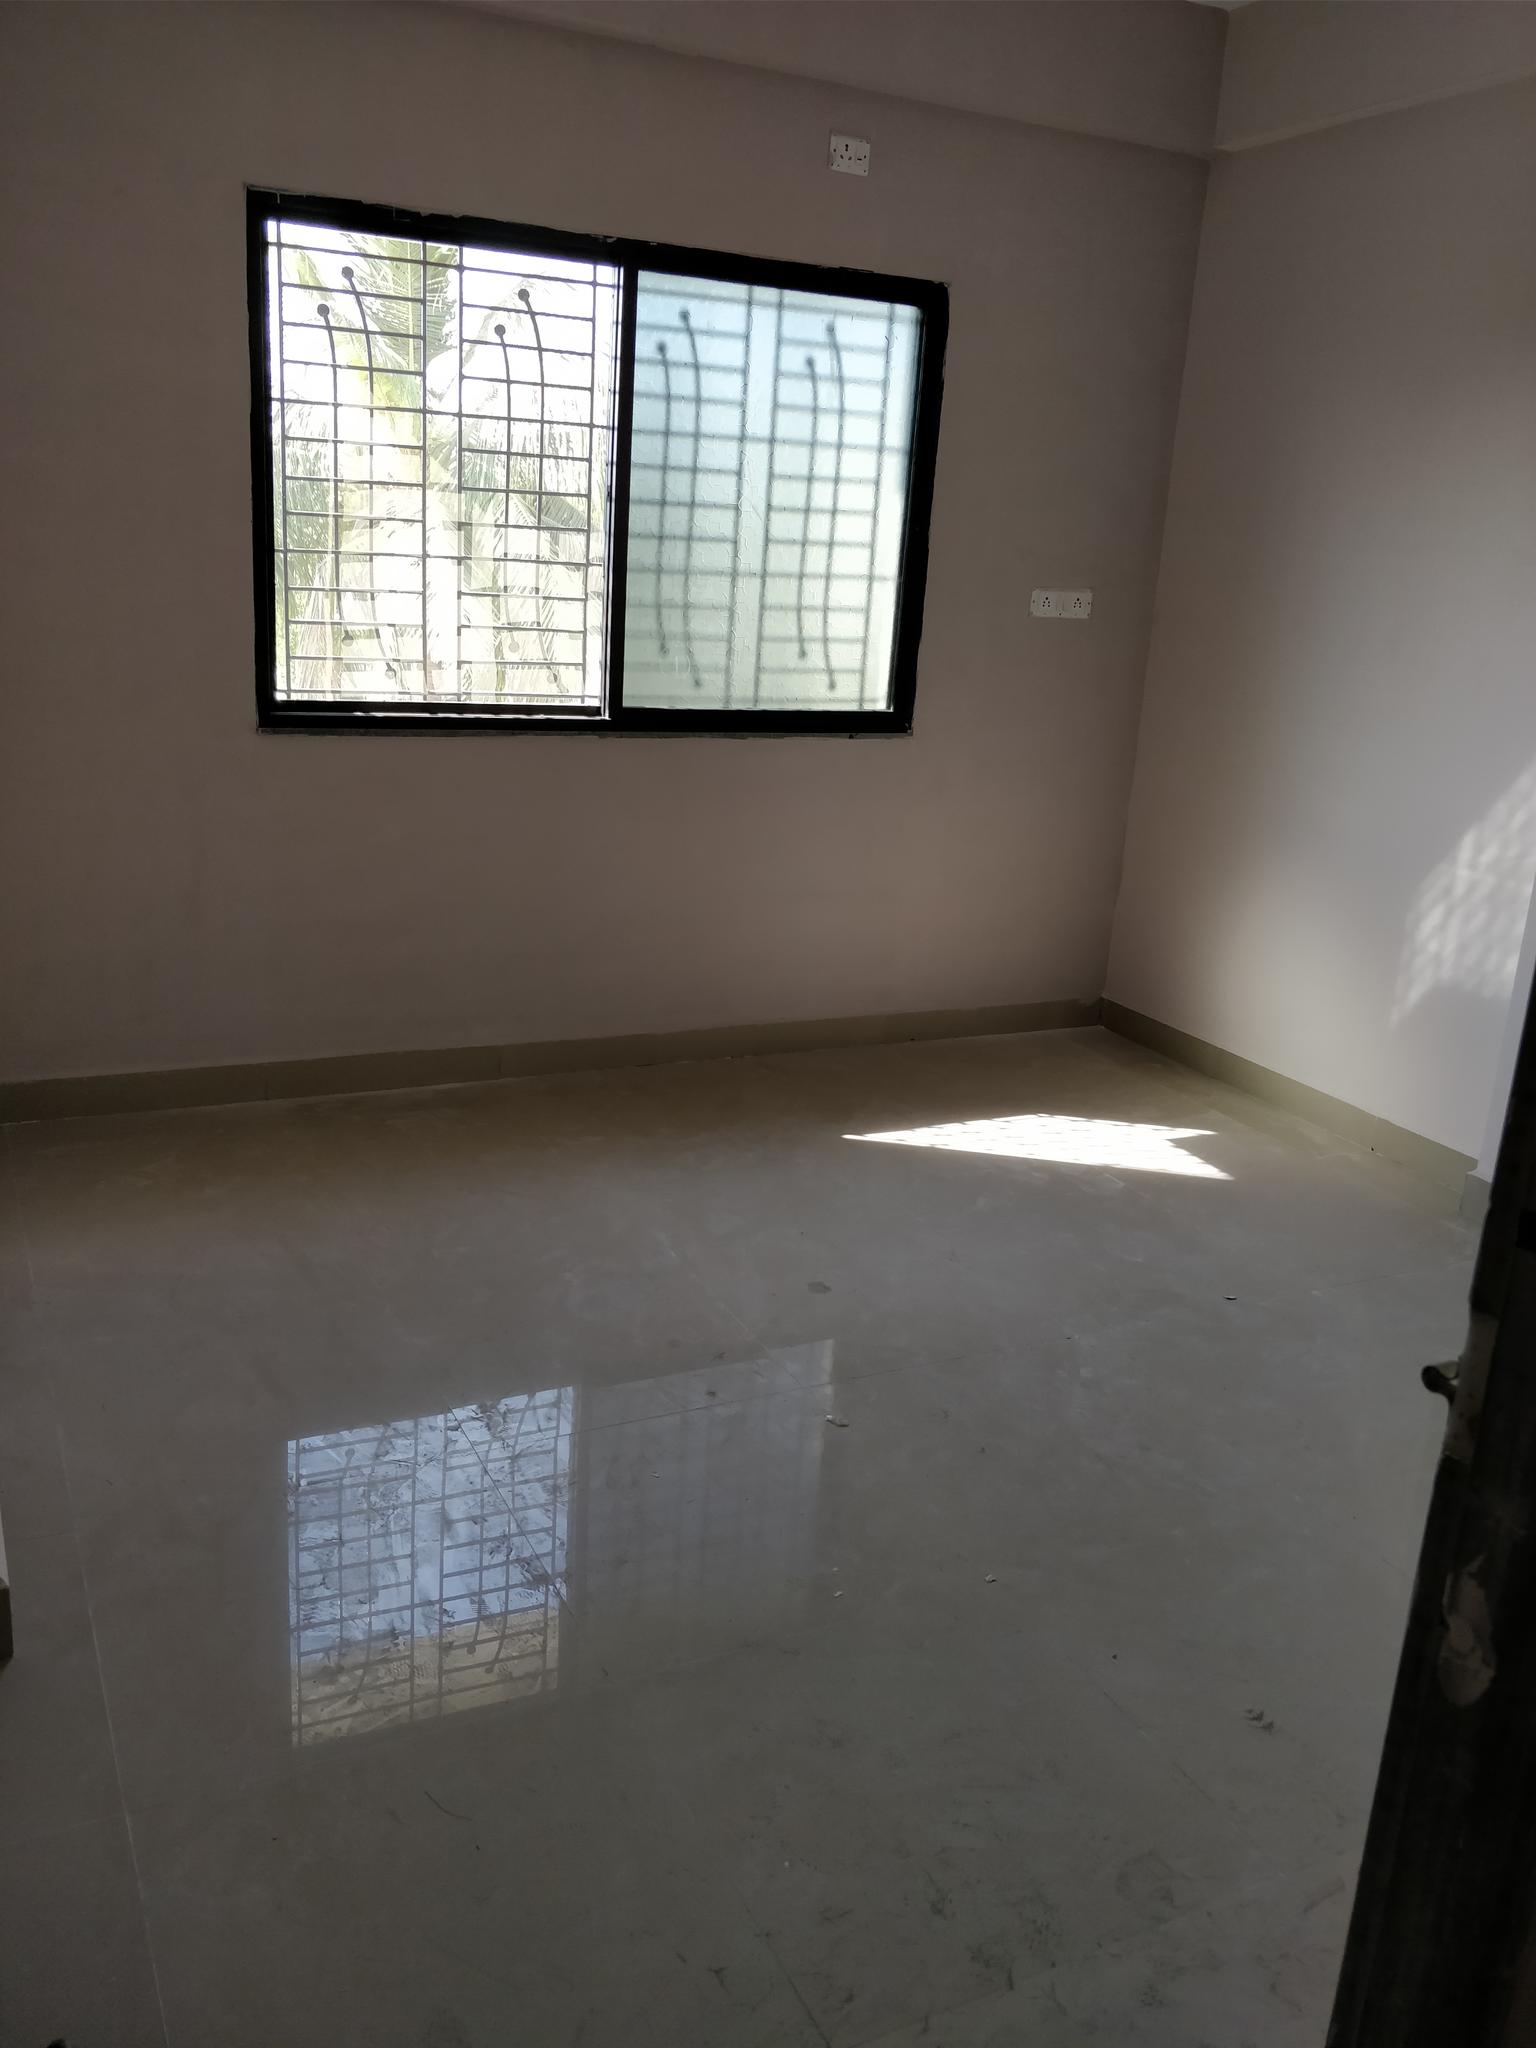 with all amenities 2bhk posh flat with swimming pool,fitness gym,lift with backup